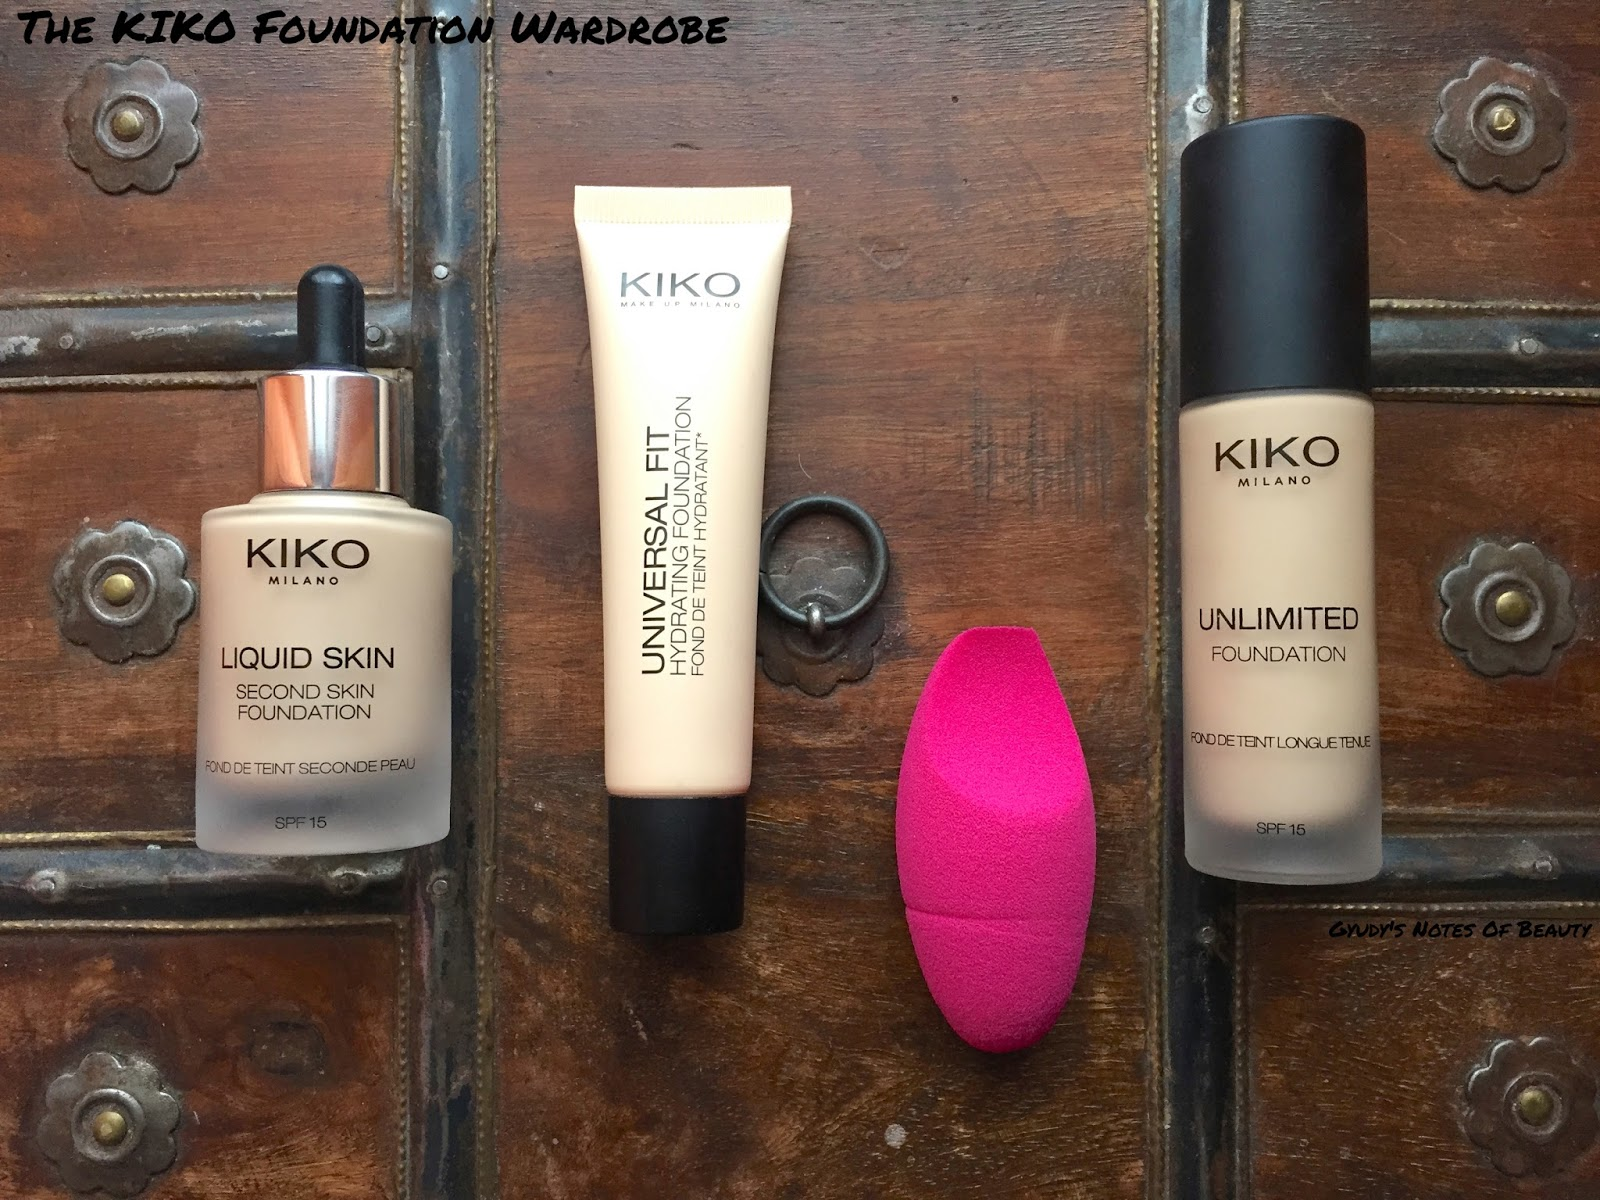 Kiko Foundation Unlimited Universal Fit Liquid Skin Precision Sponge